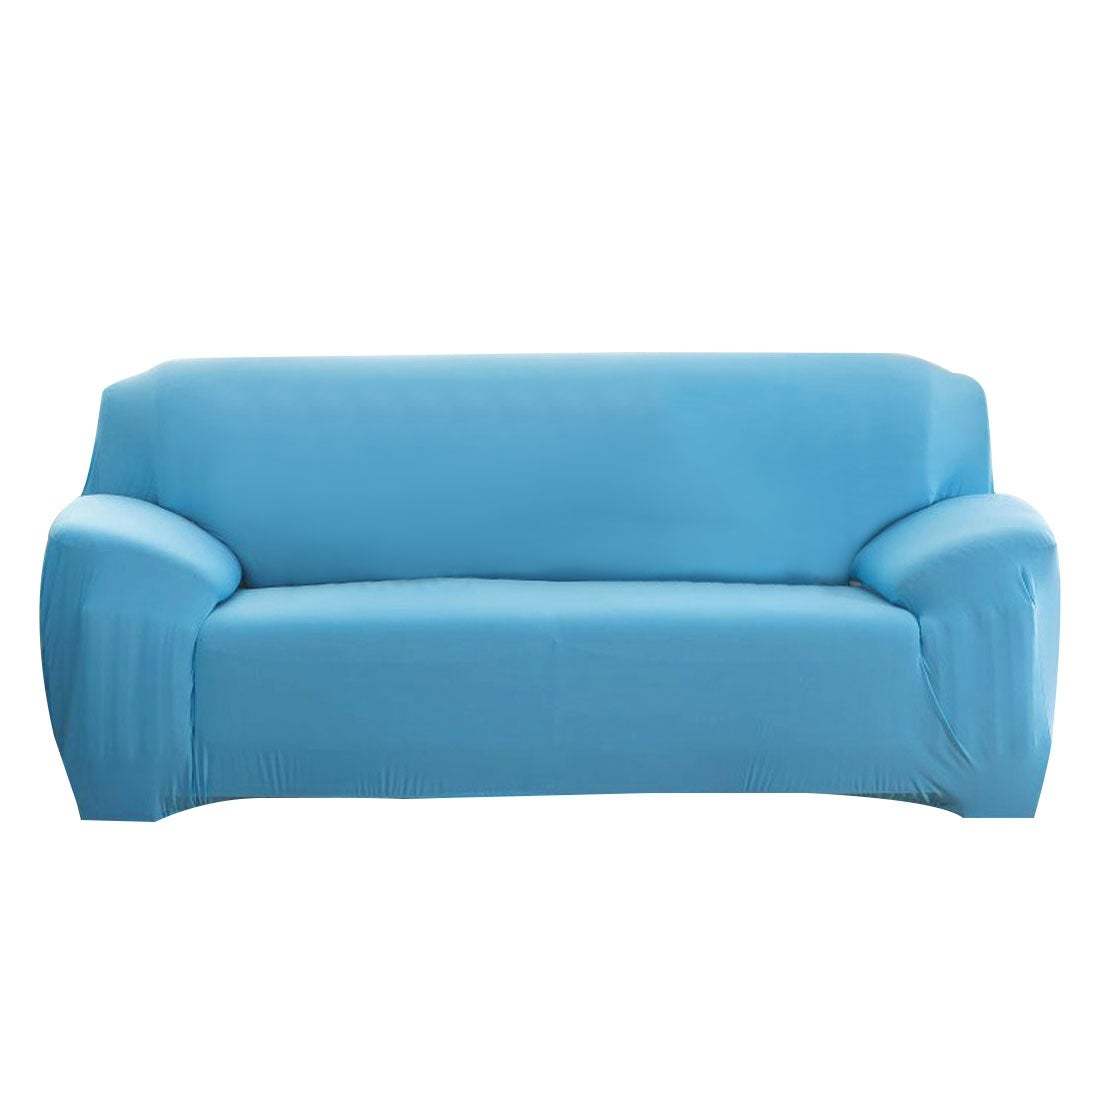 Shop Stretch 1/2/3 Seats Sofa Chair Cover Loveseat Couch Sofa Slipcover  Solid Color   On Sale   Free Shipping On Orders Over $45   Overstock.com    16823911